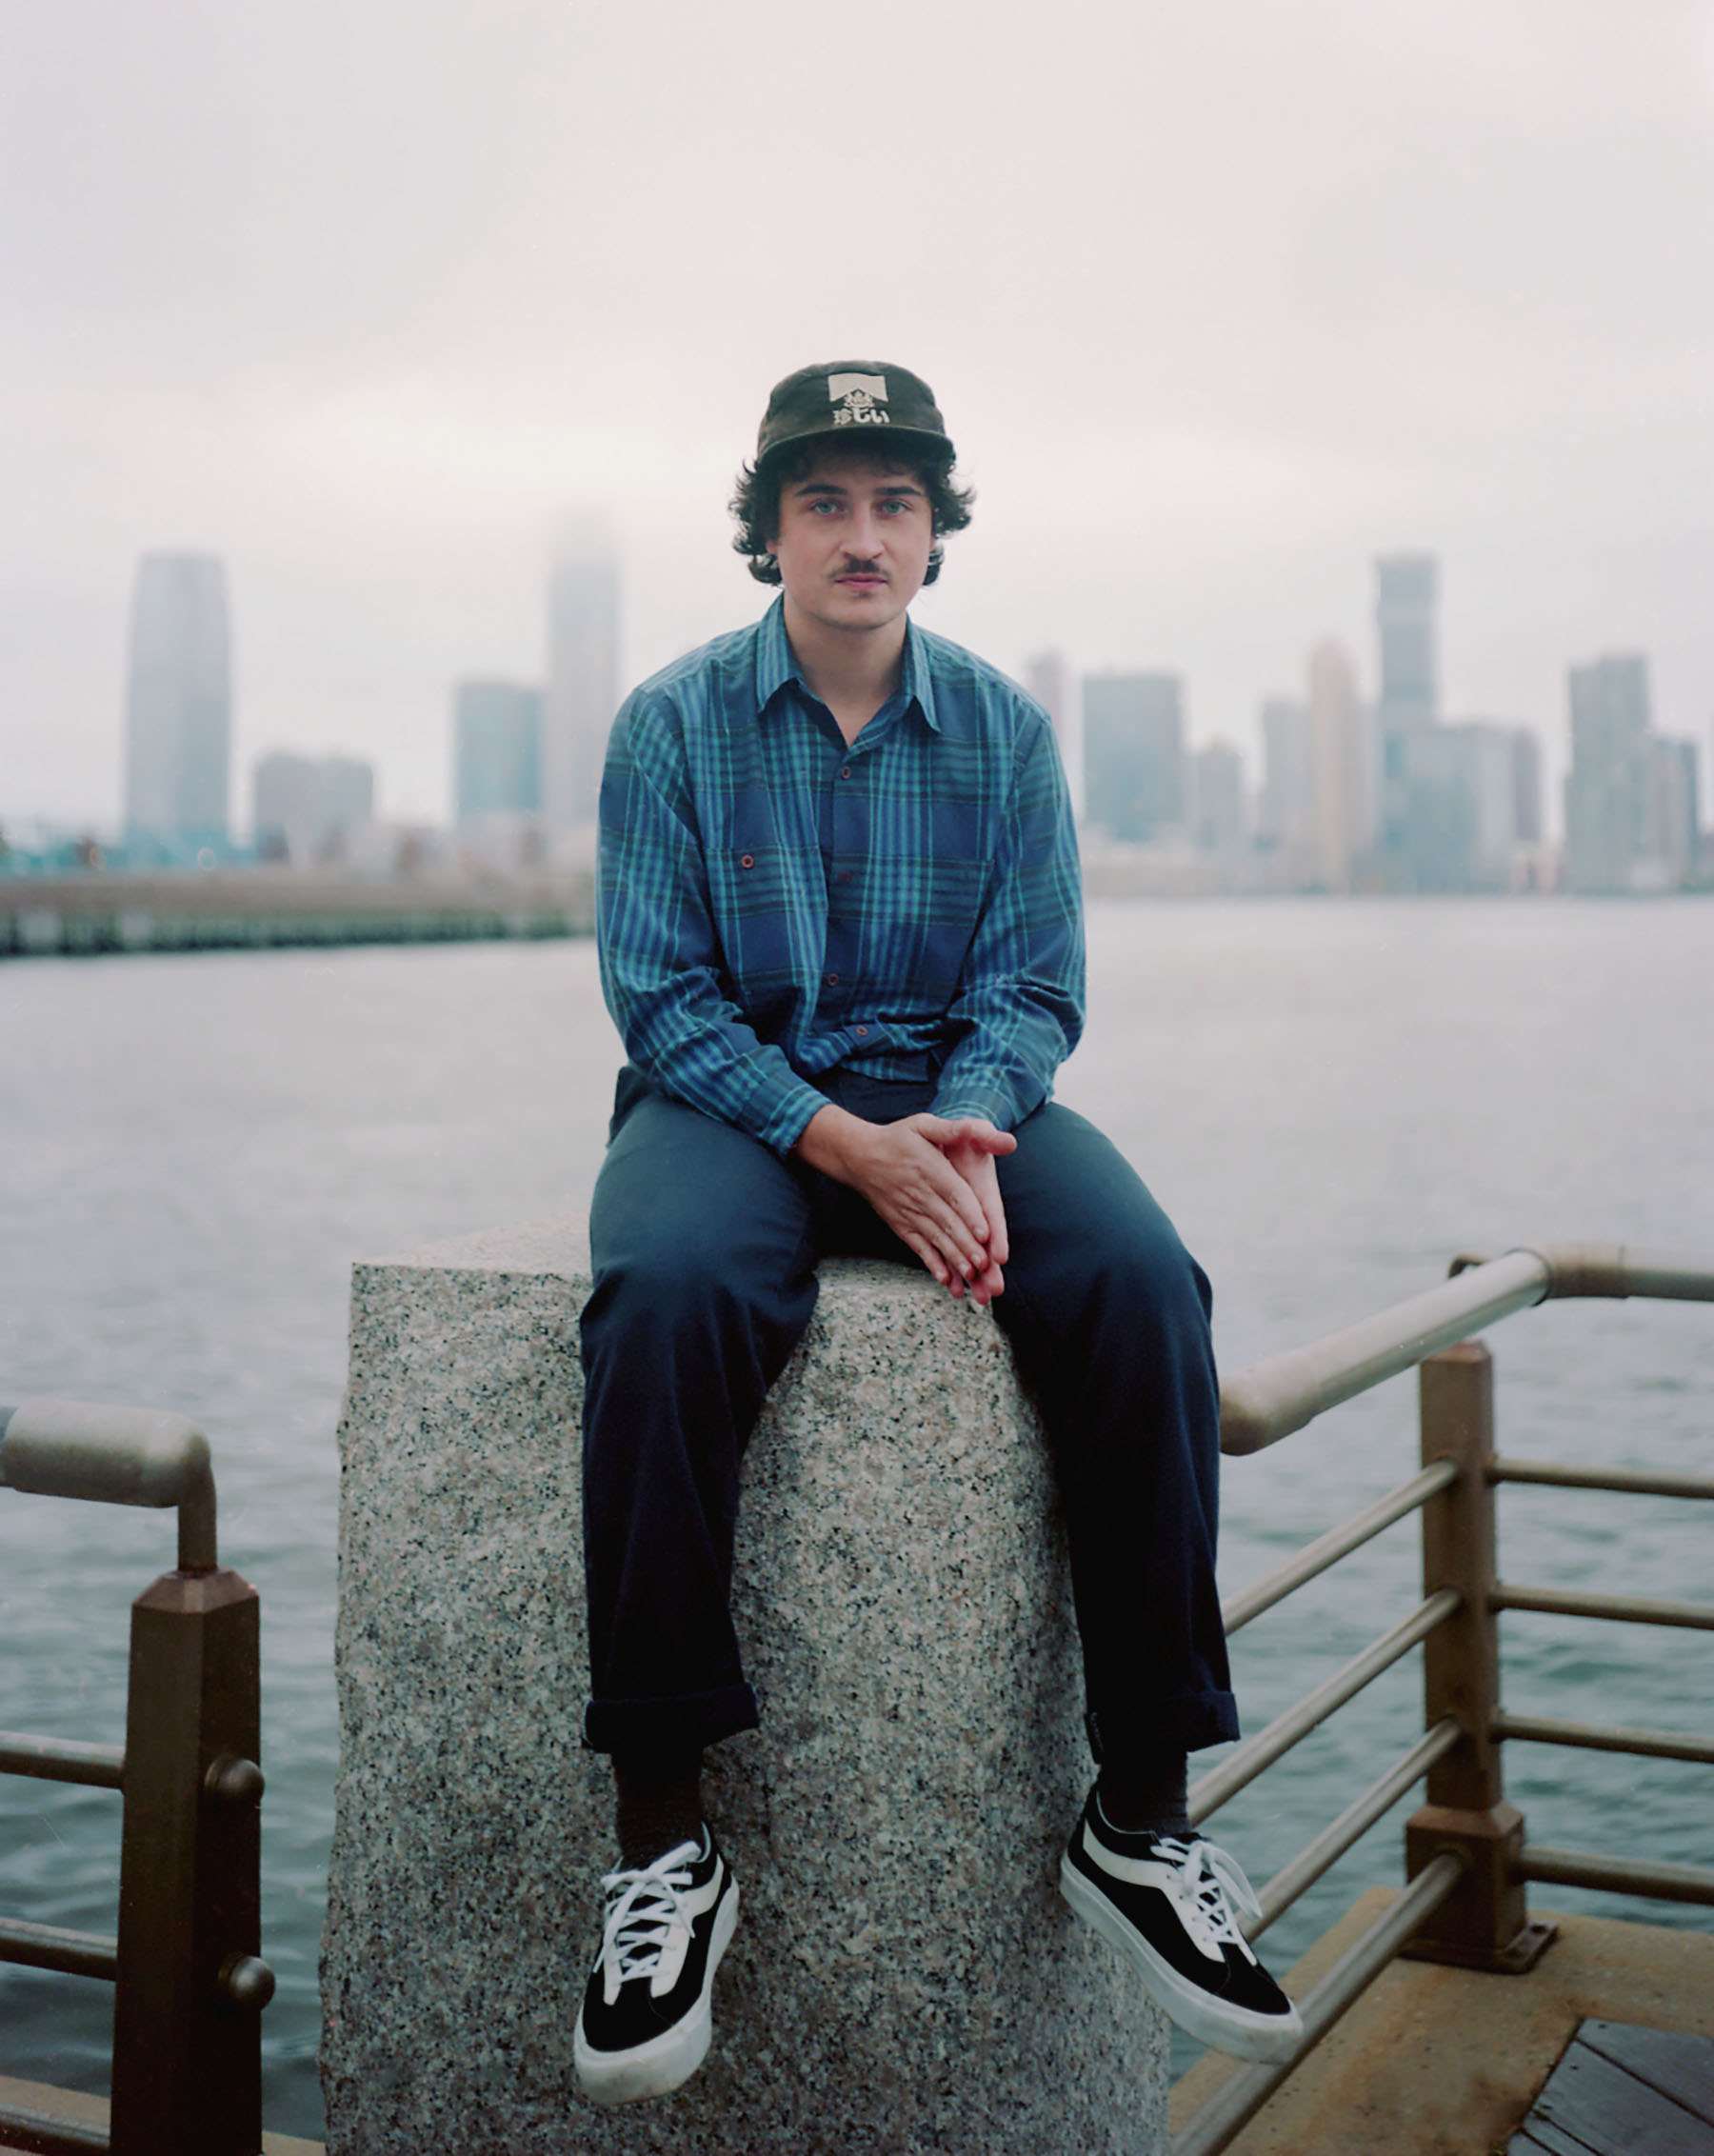 Chicago's Knox Fortune has arrived with his genre-bending new album, Stock Child Wonder